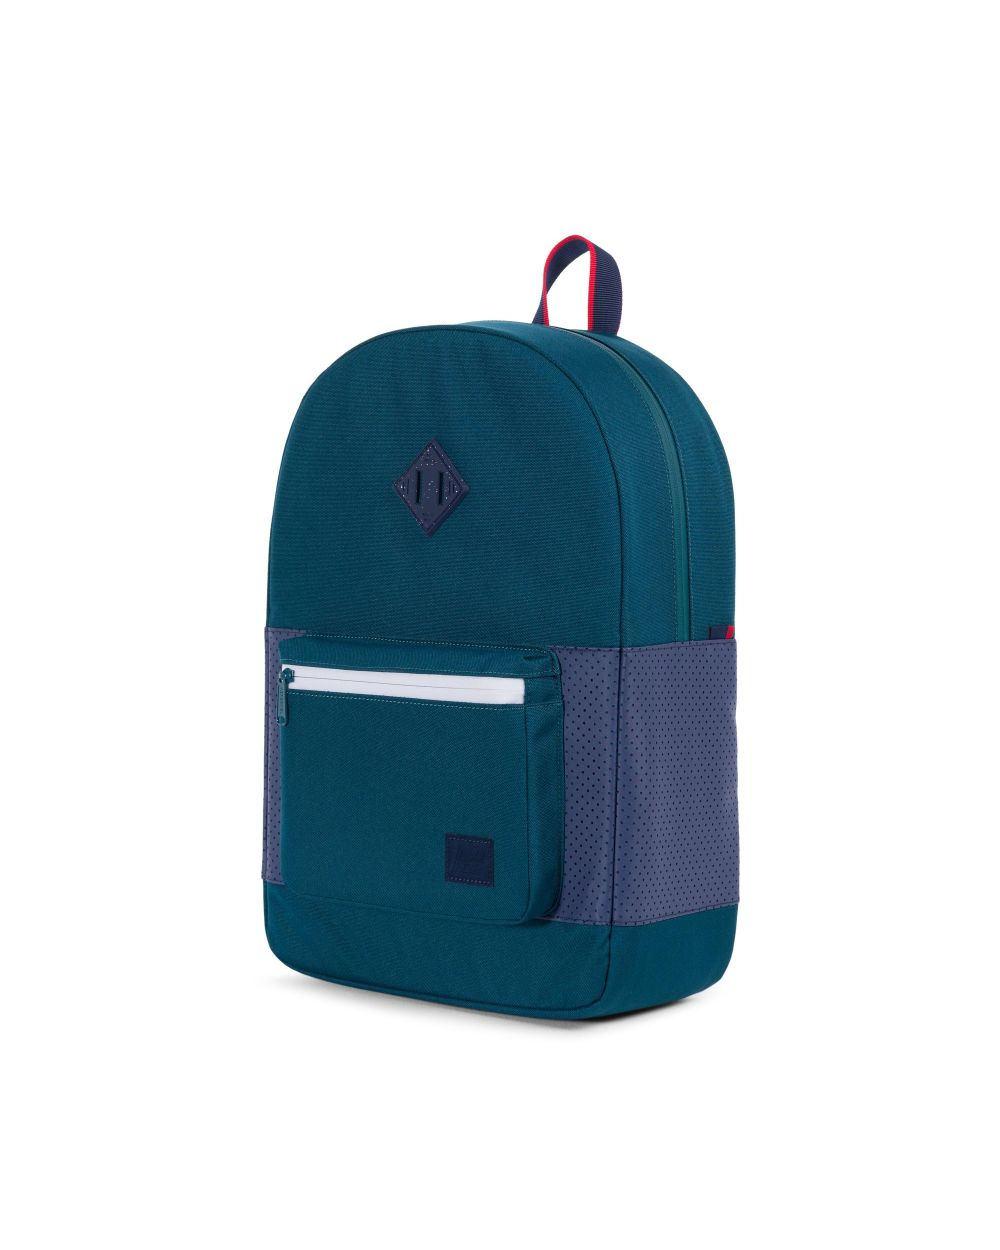 f3d2bab4054 HERSCHEL Ruskin Backpack Deep Teal Peacoat Barbados Cherry - Aspect  Collection